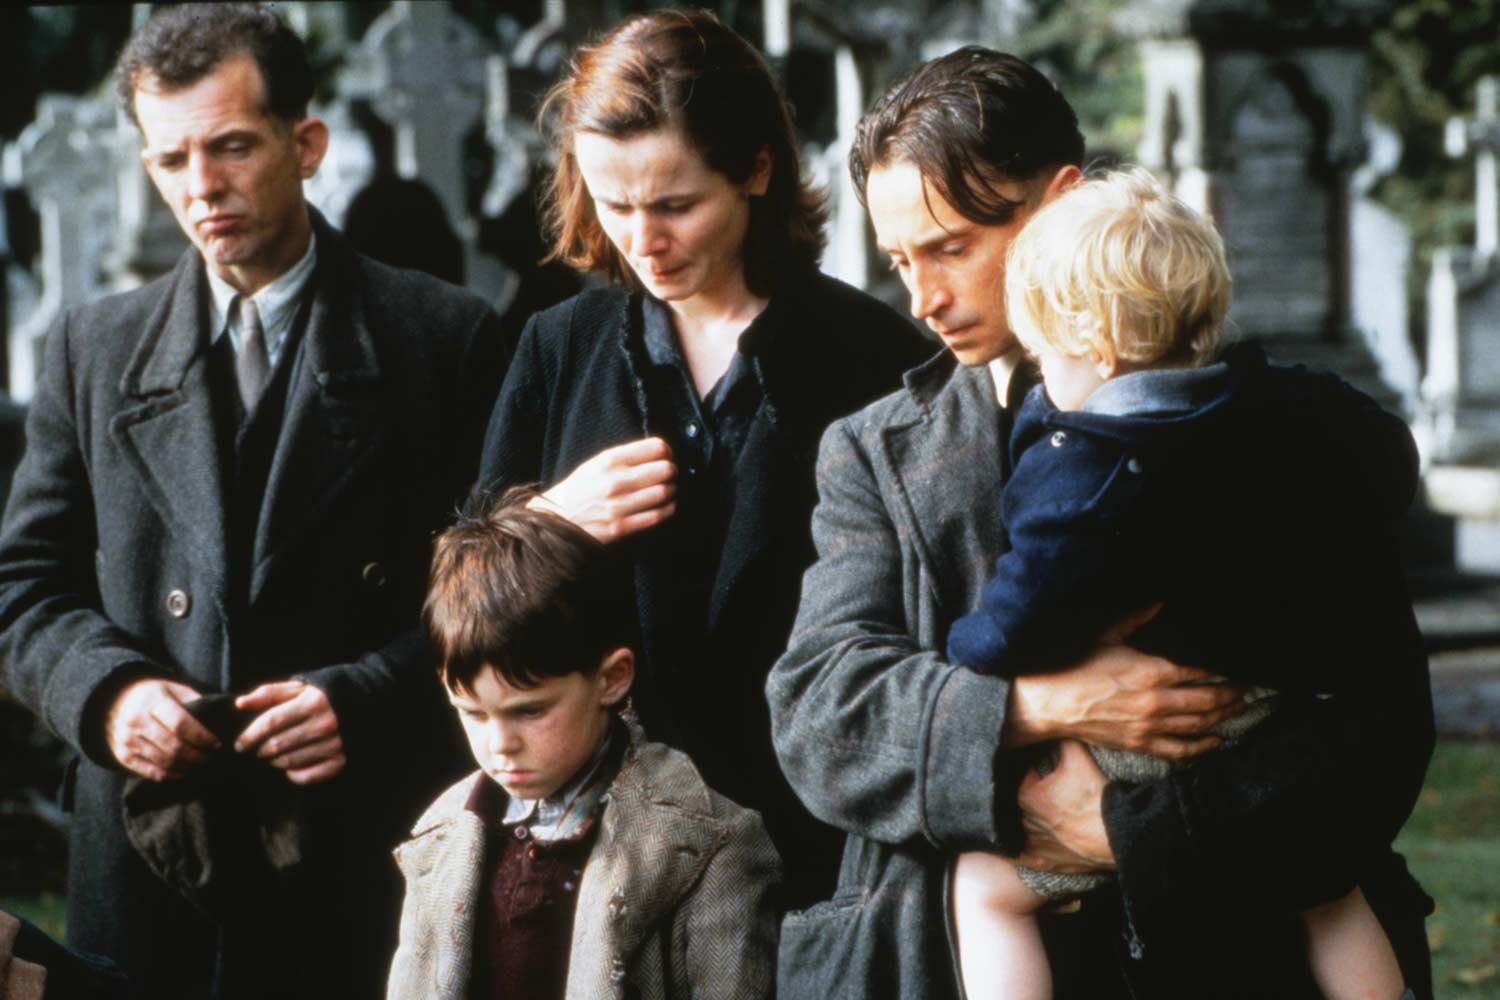 a review of the film angelas ashes Movie news movie reviews television tv news tv reviews music music news music reviews windmill lane radio books  this is ireland's answer to blood brothers - angela's ashes: the musical .